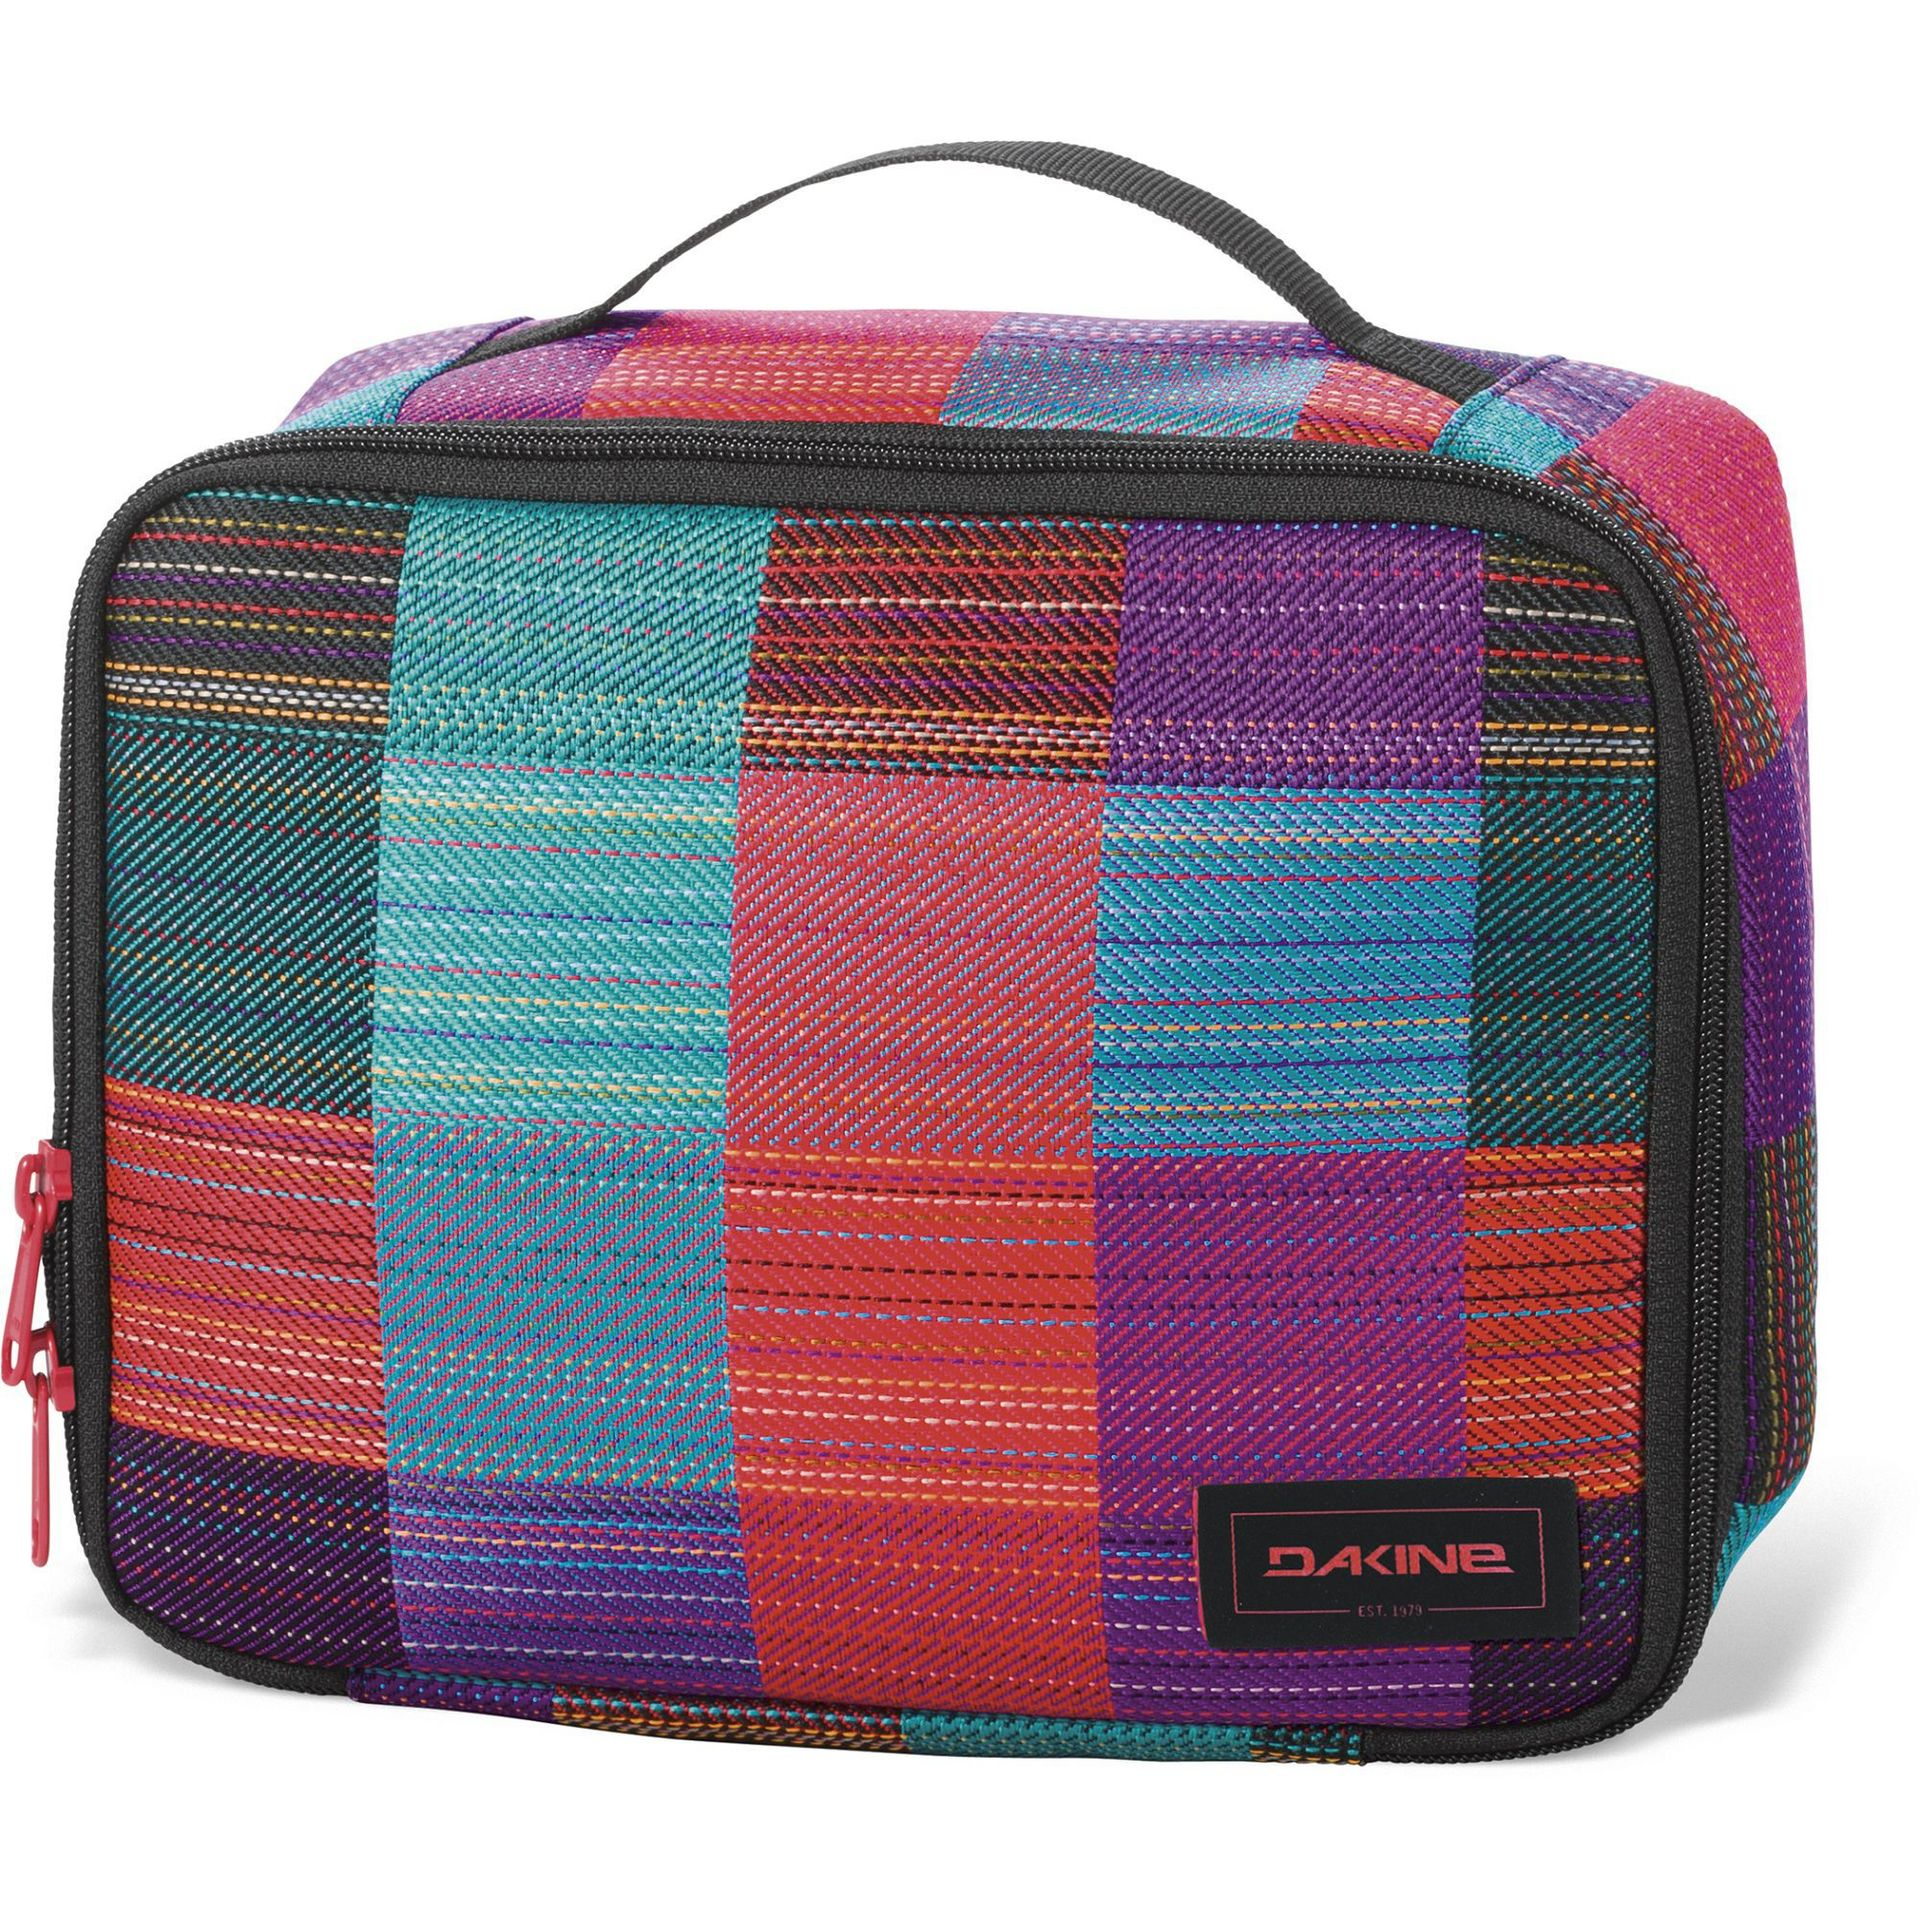 ETUI DAKINE WOMENS LUNCH BOX LAYLA